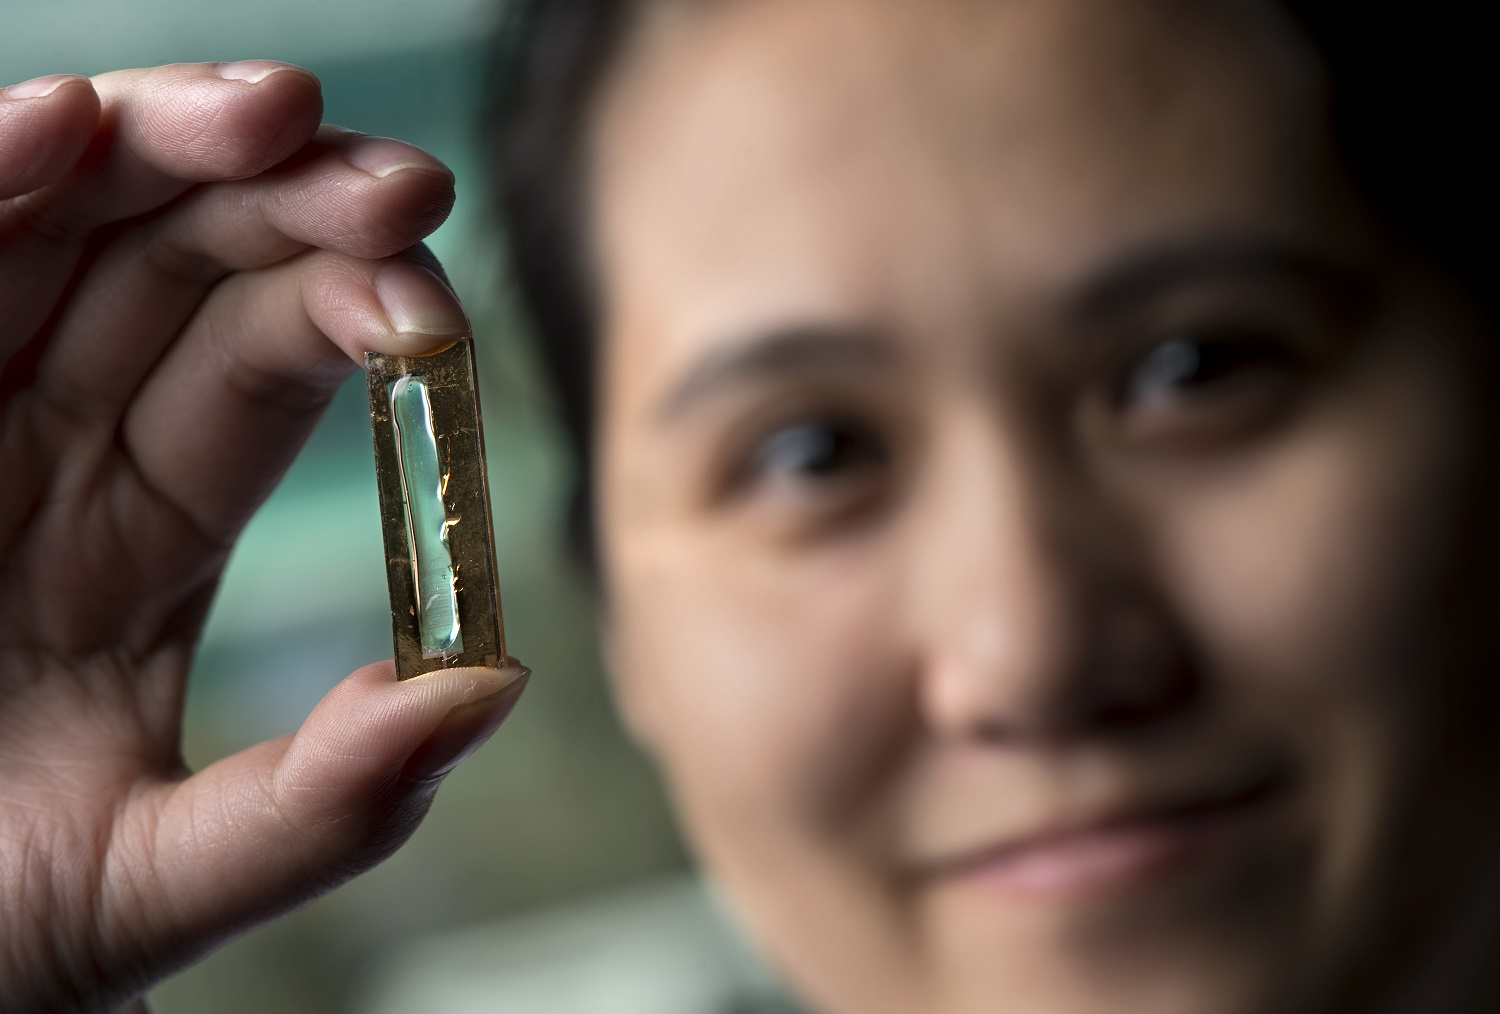 UCI chemist Reginald Penner and doctoral student Mya Le Thai, shown, have developed a nanowire-based battery technology that allows lithium ion batteries to be recharged hundreds of thousands of times. Steve Zylius/UCI